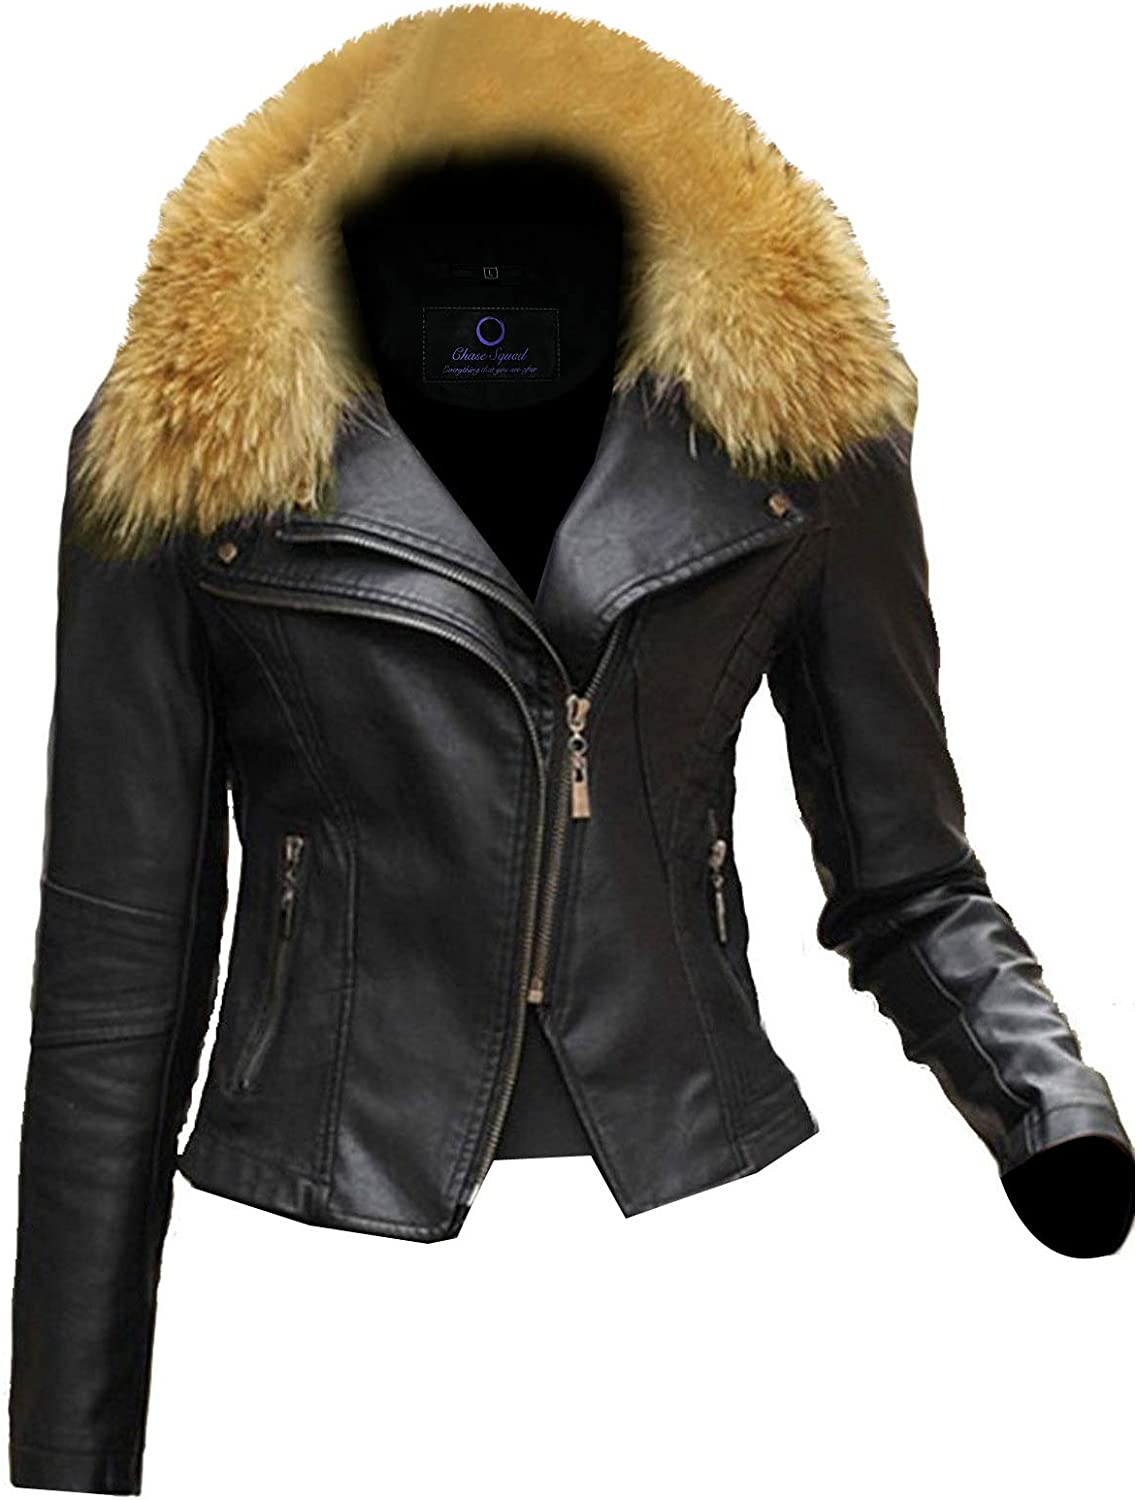 Chase Squad Furry Leather Jacket Women  Short Body Lambskin Leather Jacket with Notch Collar  Furry Jacket